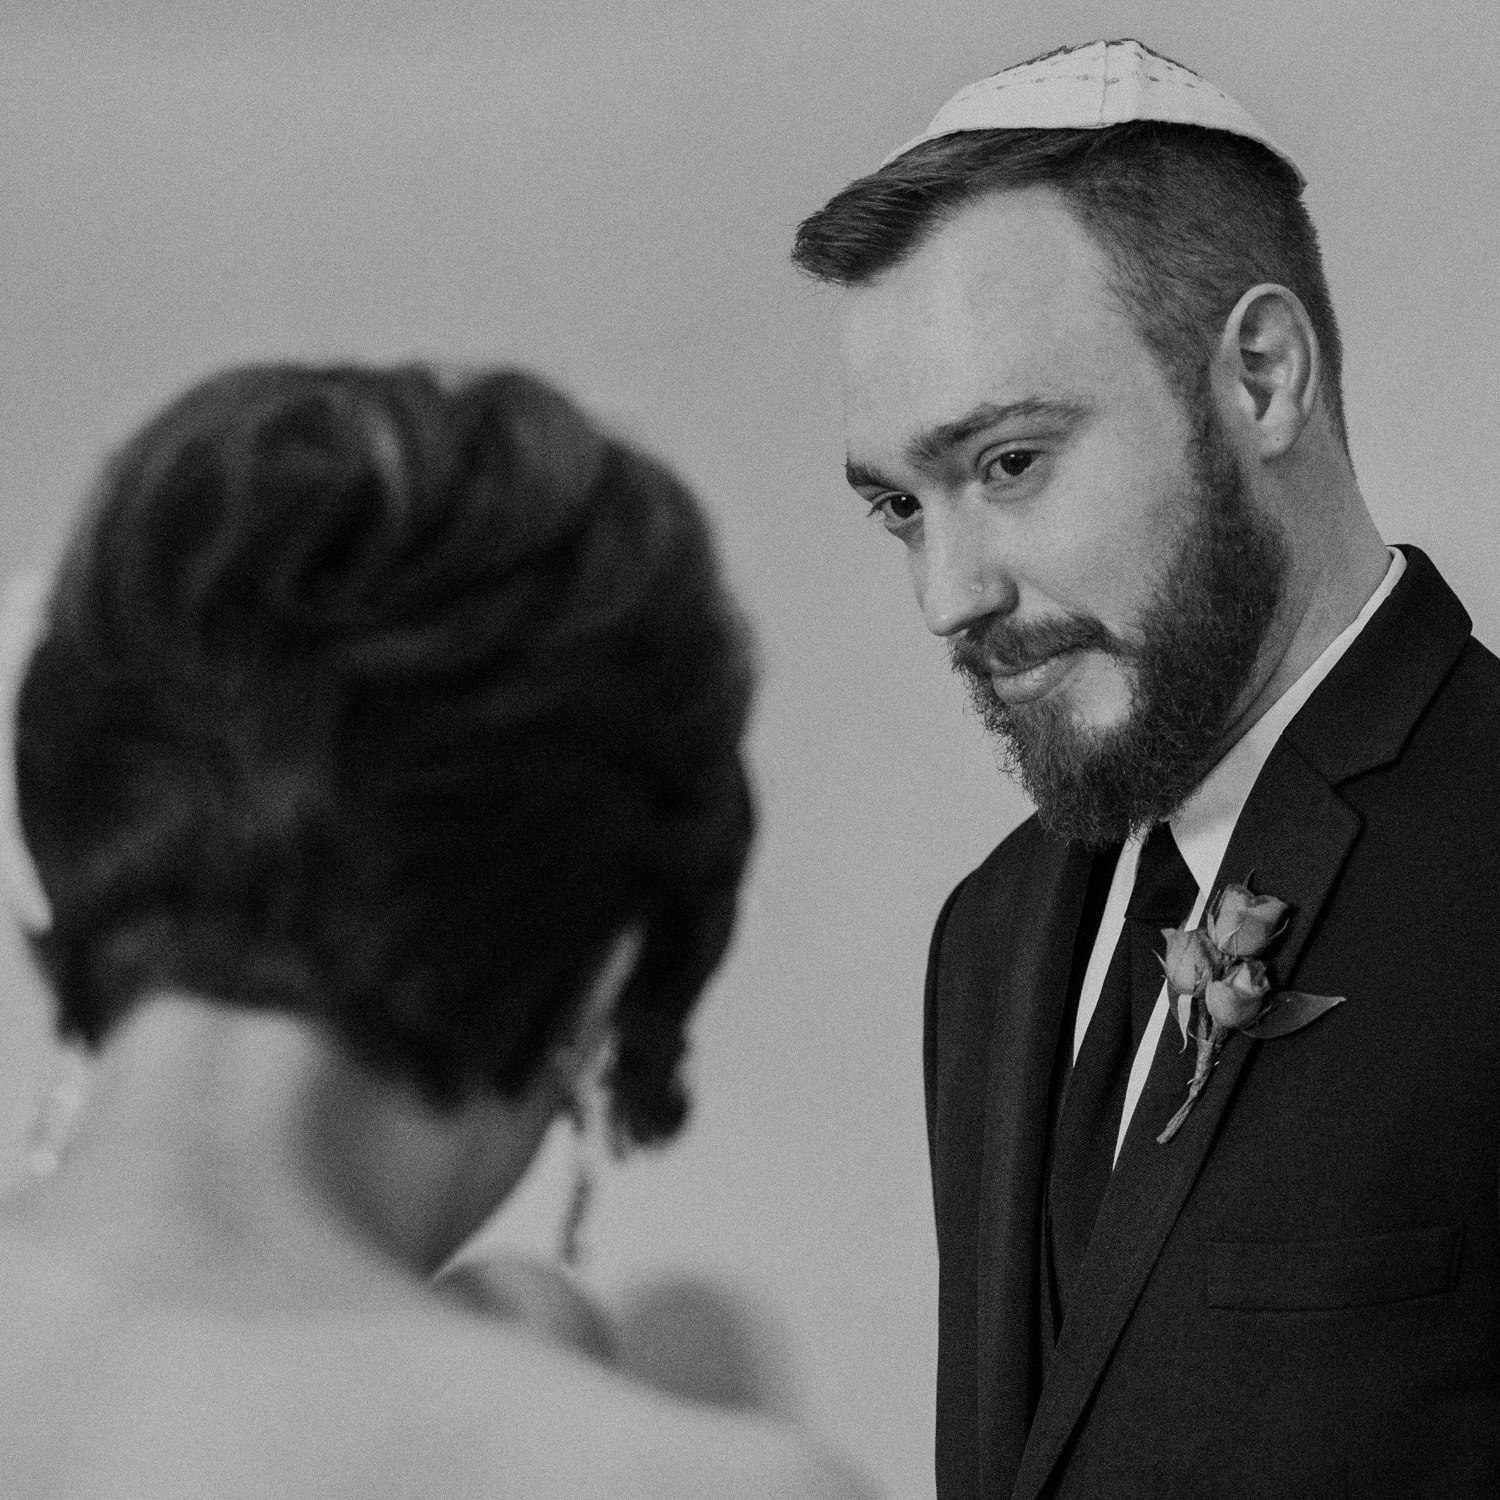 groom watches bride as tears roll down his face during vows